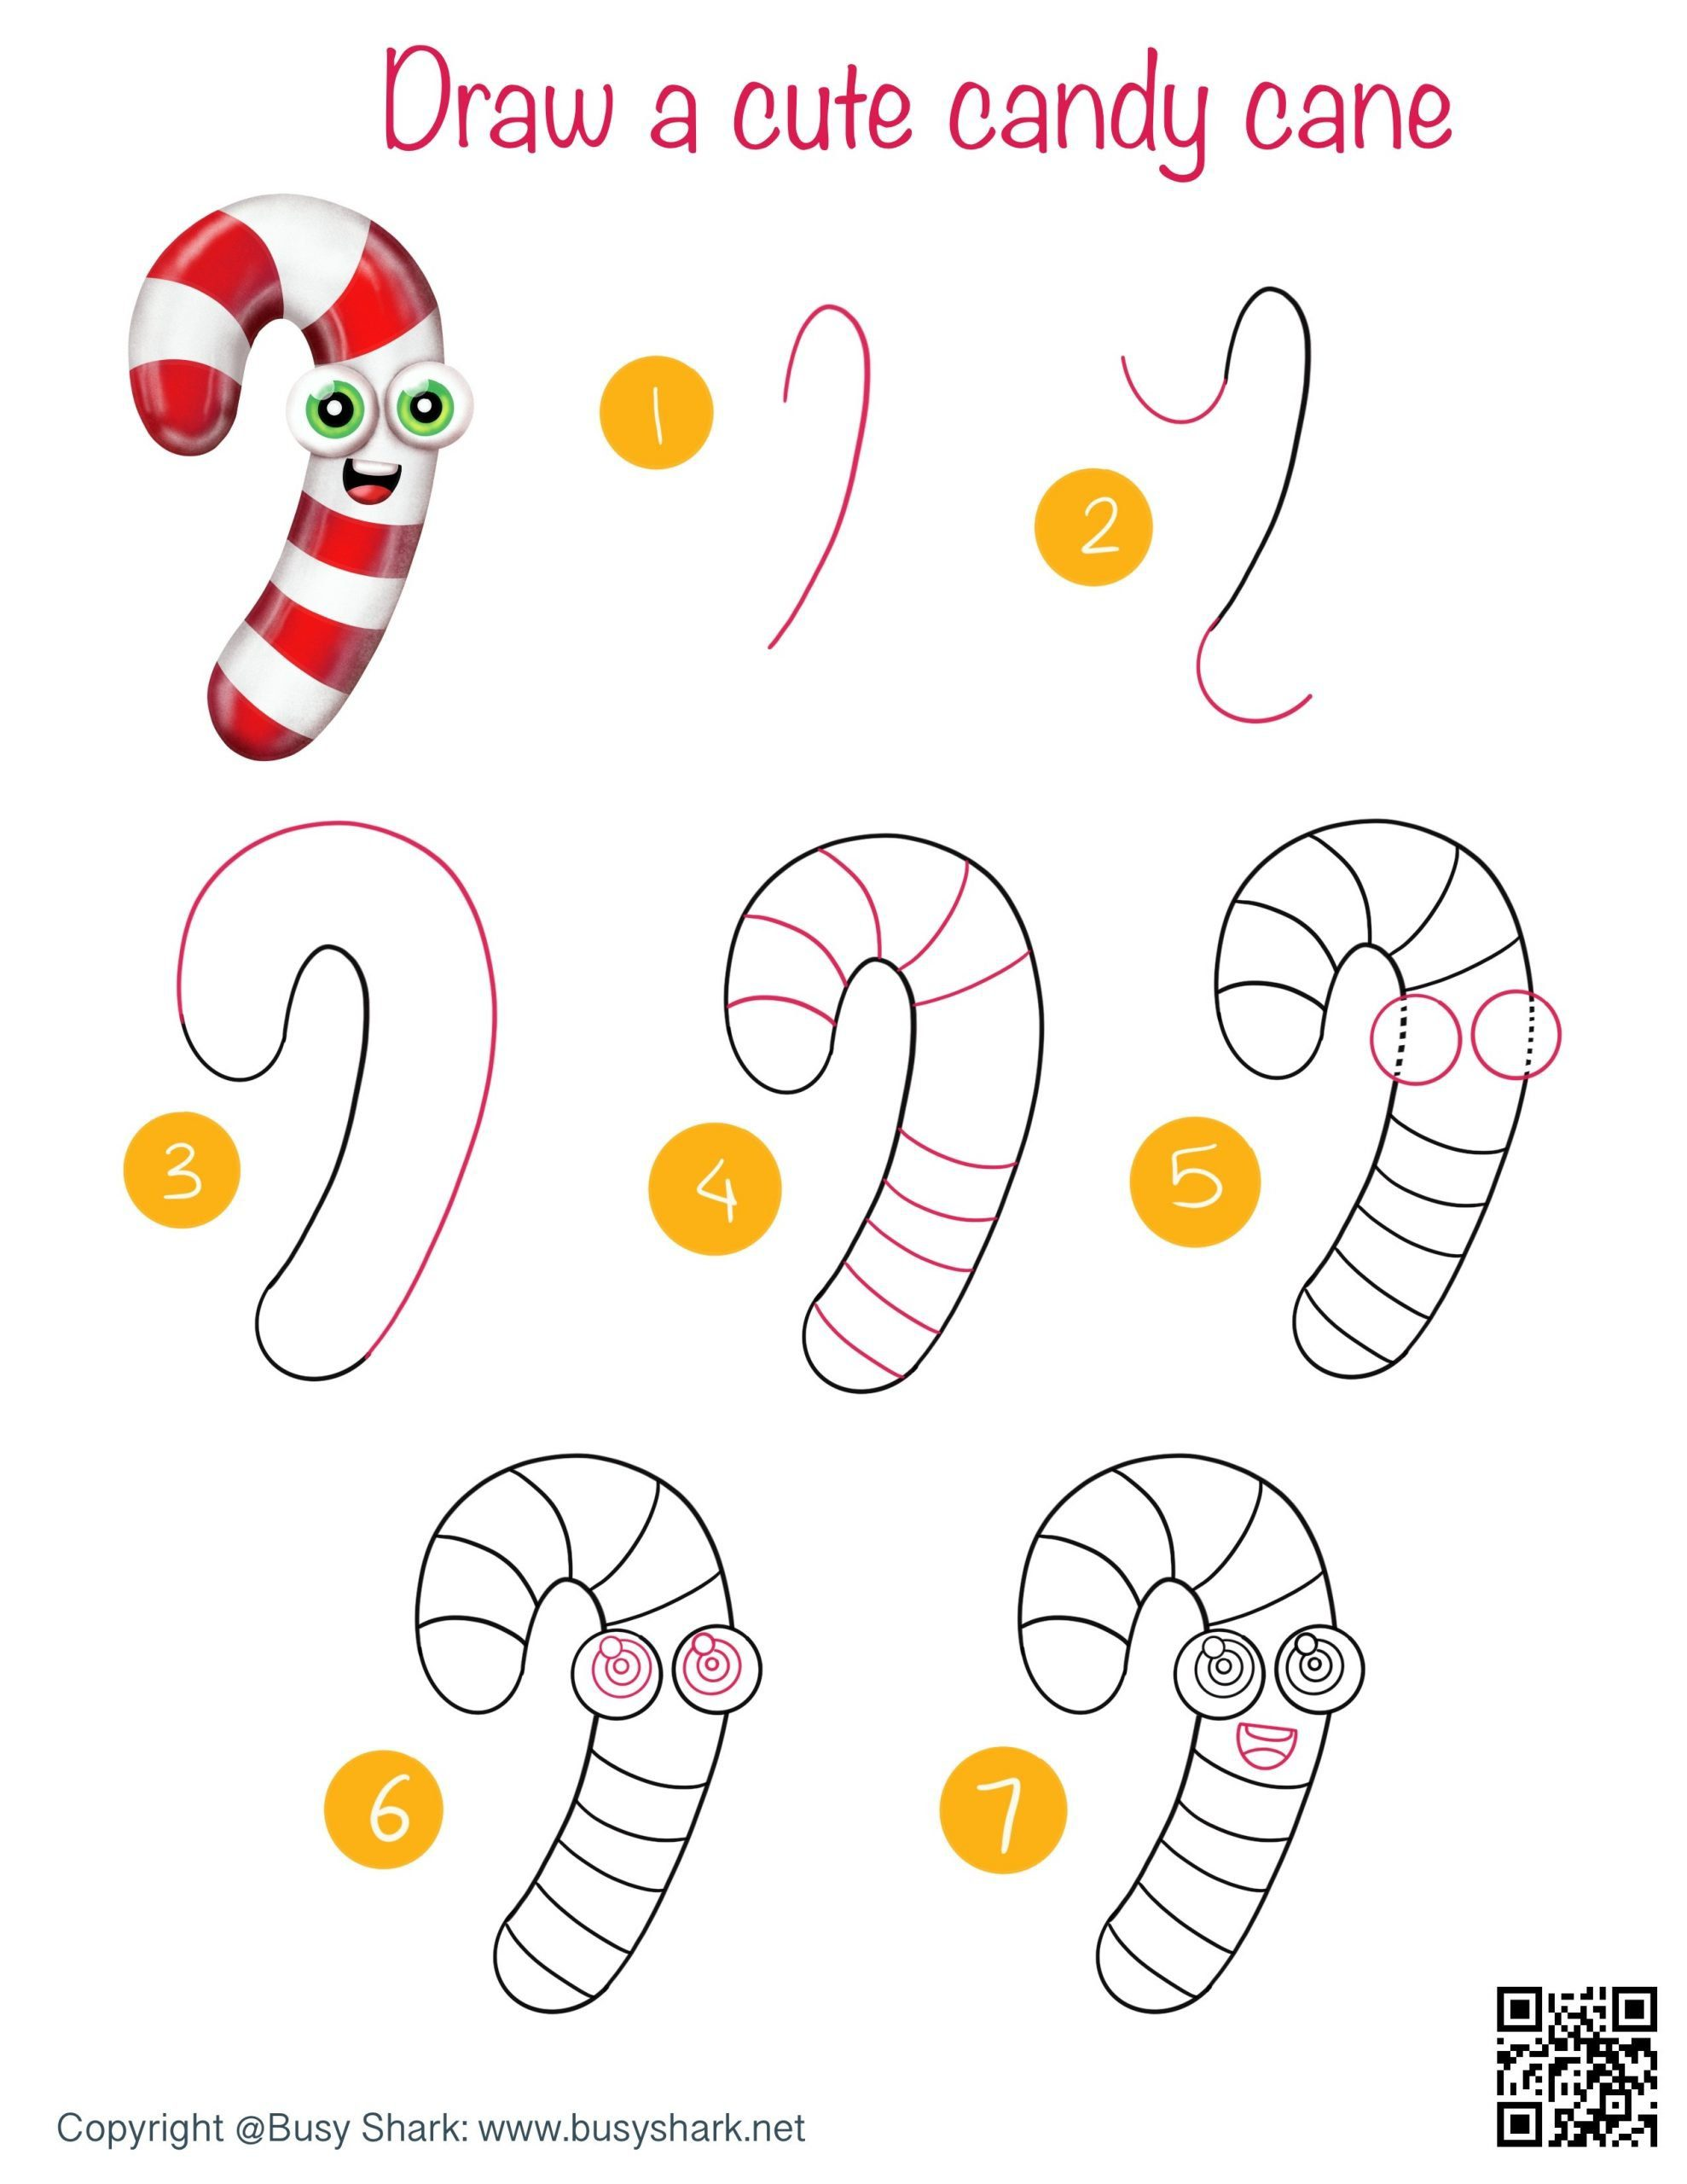 How to draw a candy cane directed drawing step by step tutorial , winter drawing activity